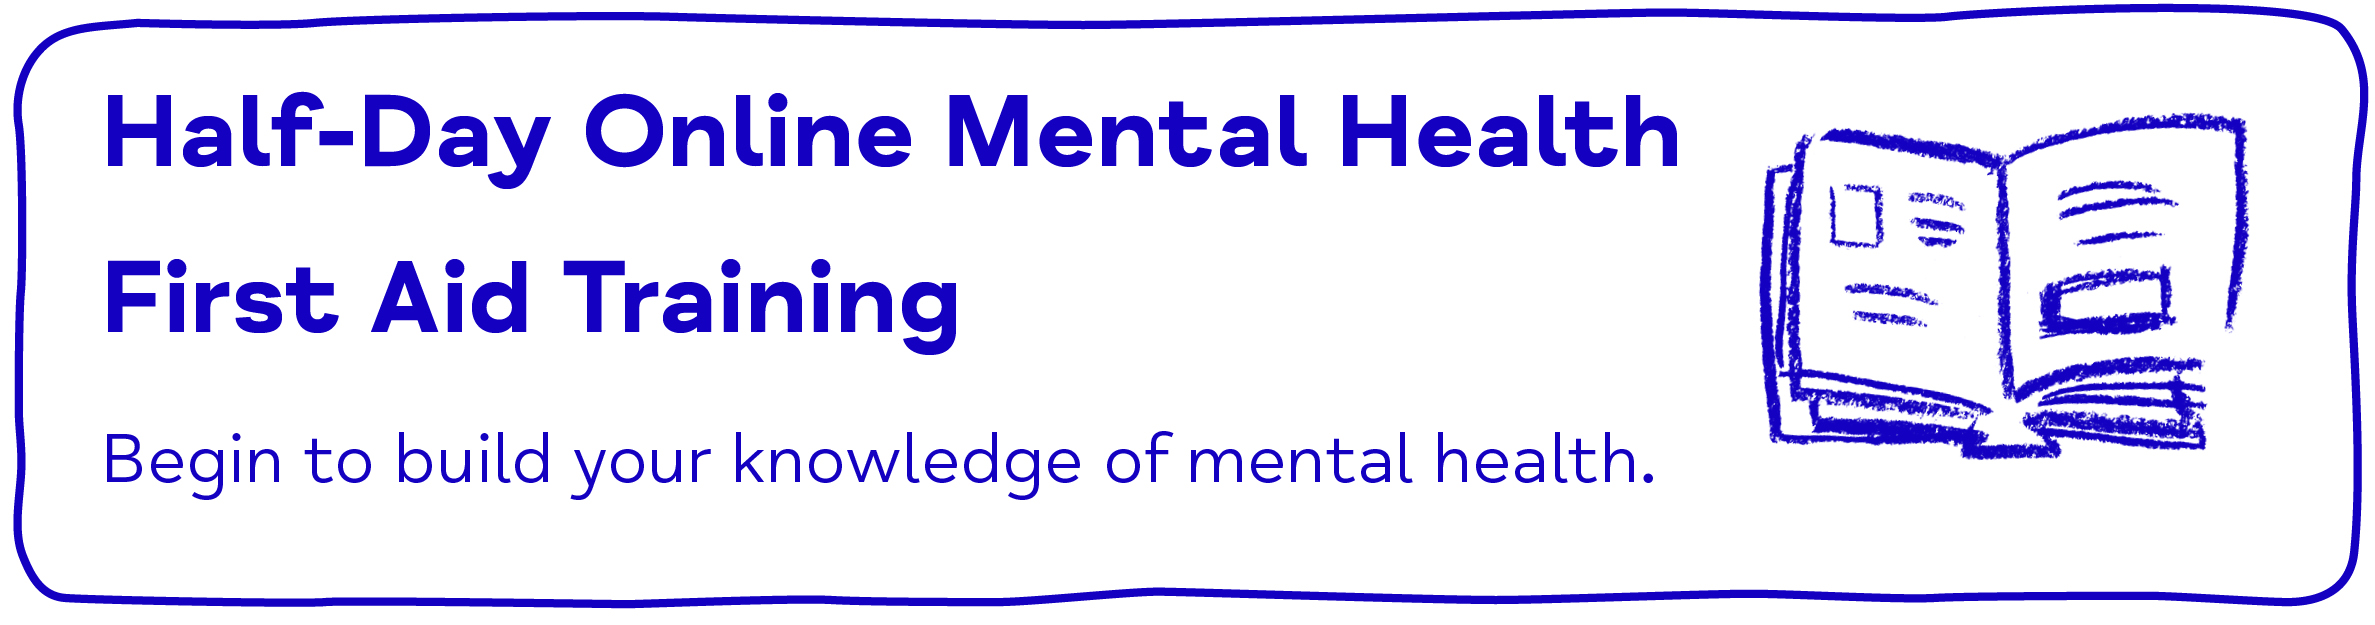 Half-Day Online Mental Health First Aid Training - Begin to build your knowledge of mental health.